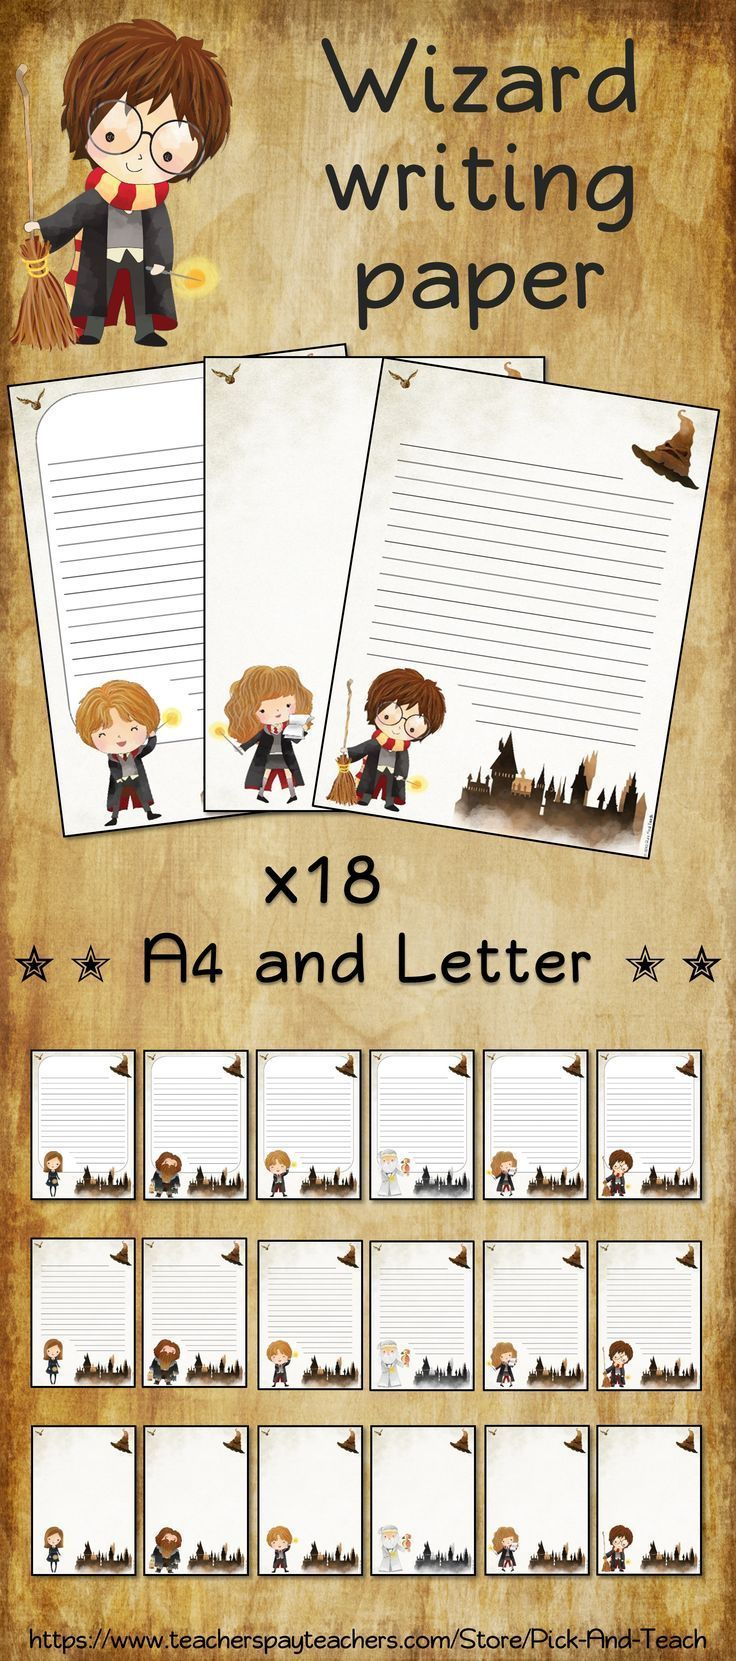 Writing And Or Drawing Paper For Harry Potter Fans 3 Different Styles Lined And Unlined 6 D Harry Potter Planner Harry Potter Letter Harry Potter Classes